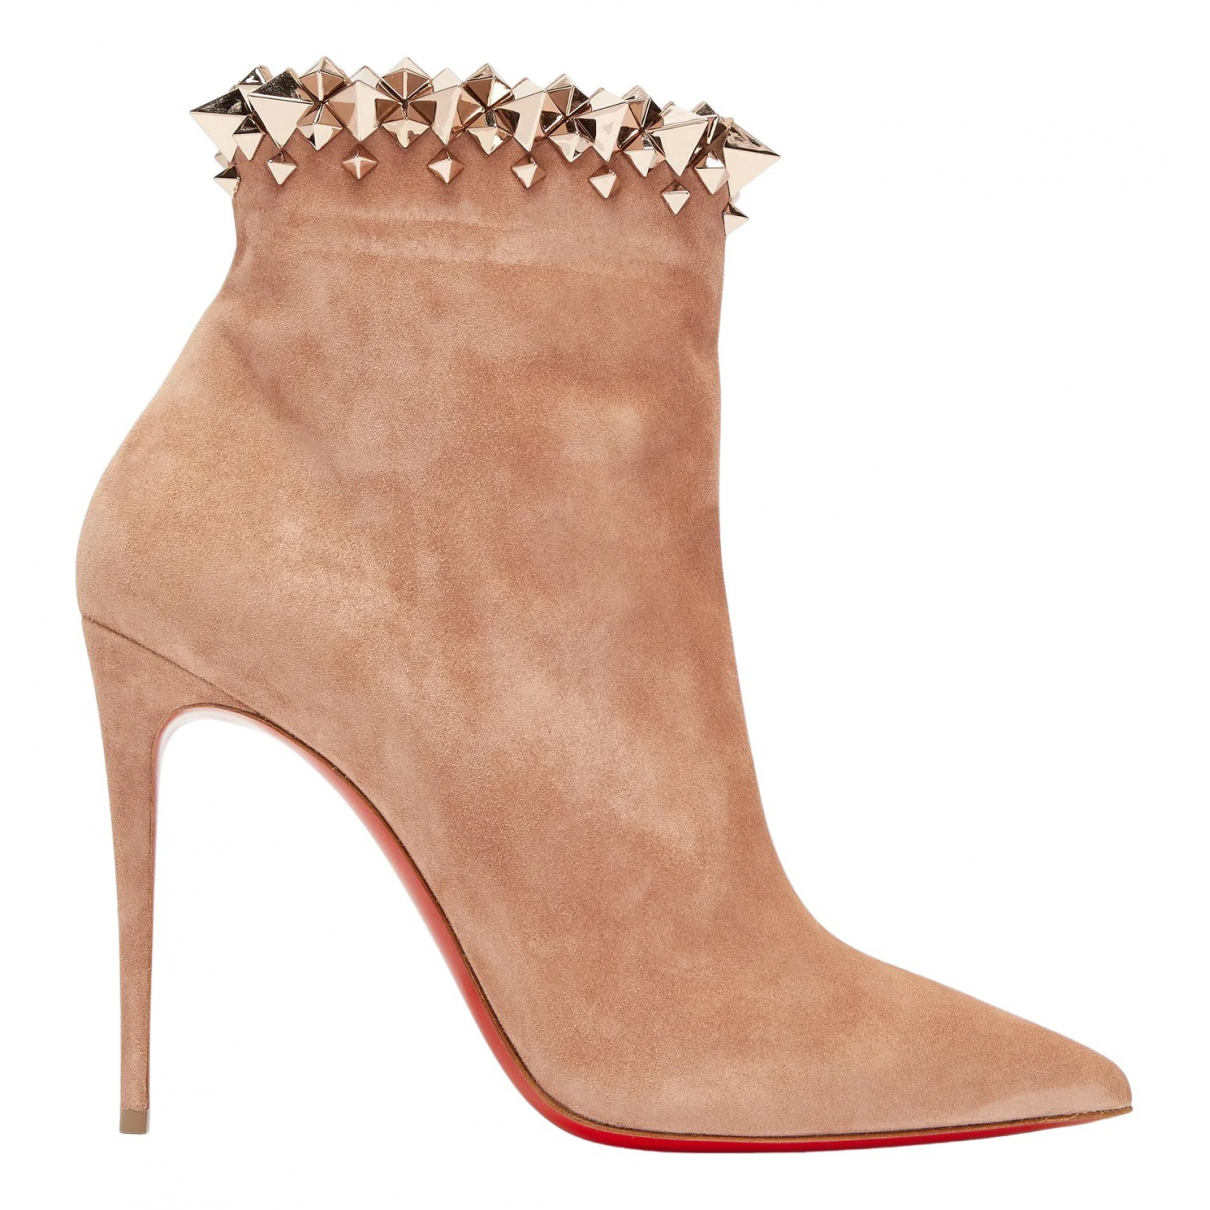 Christian Louboutin \N Beige Suede Ankle boots for Women 35 EU